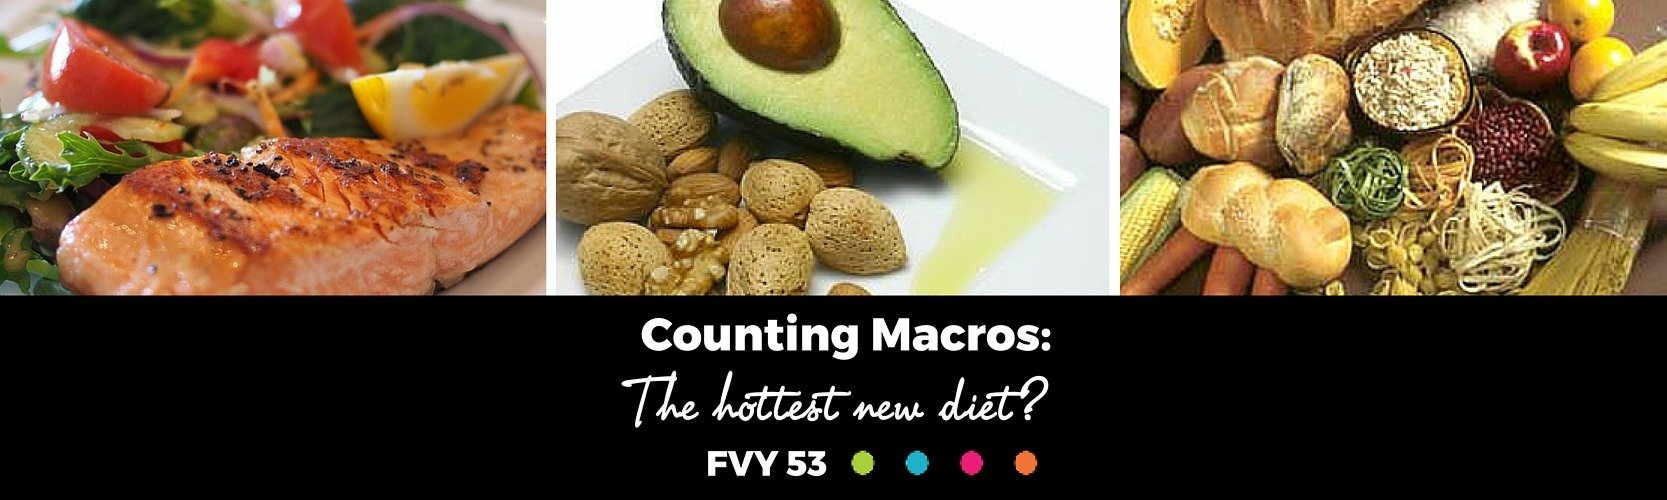 FVY 53: Is Counting Macros the Hottest New Diet?